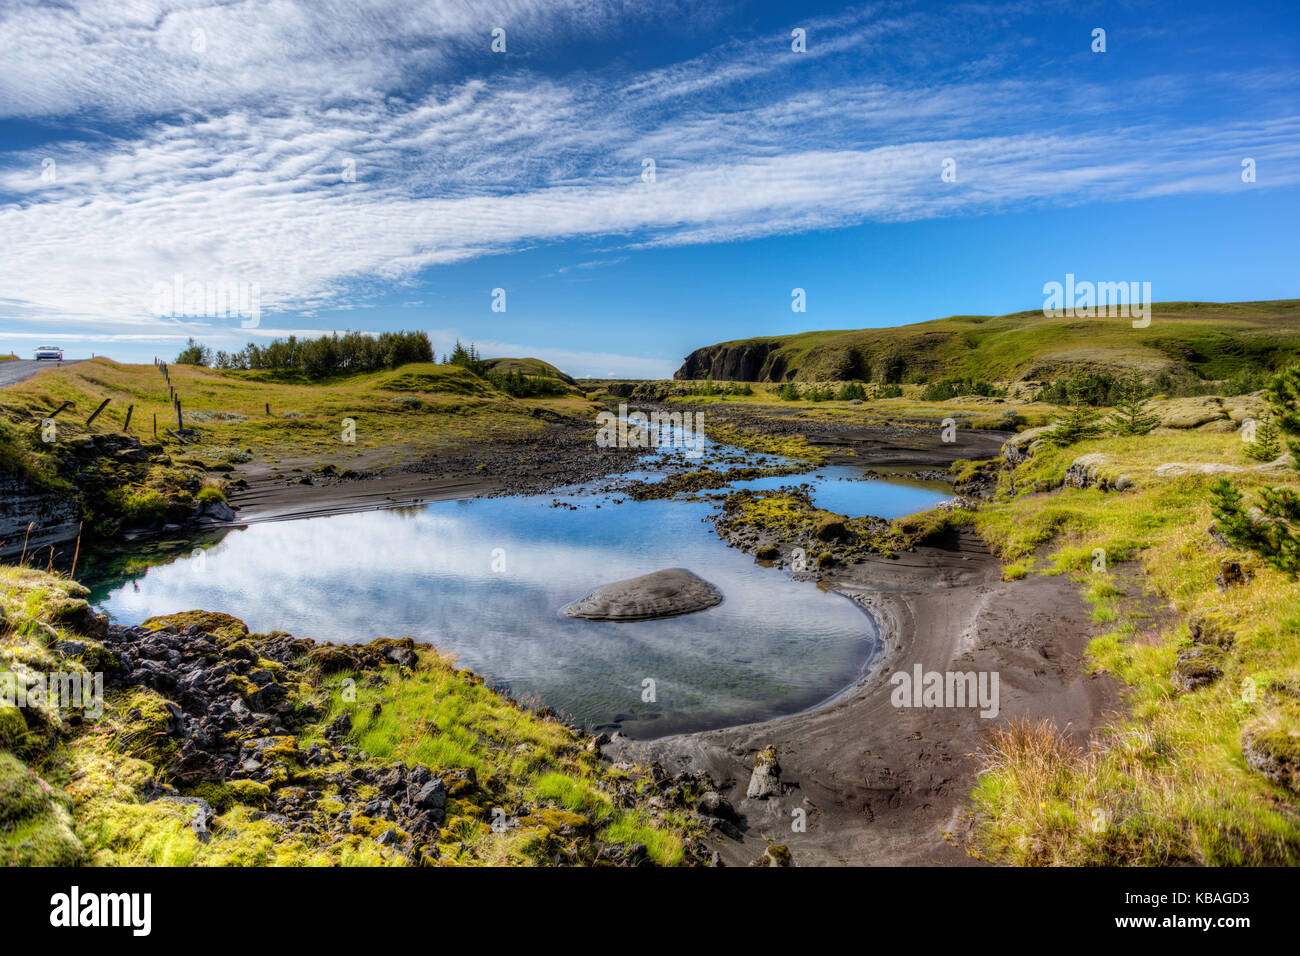 Sunny Day in South Eastern Iceland - Stock Image